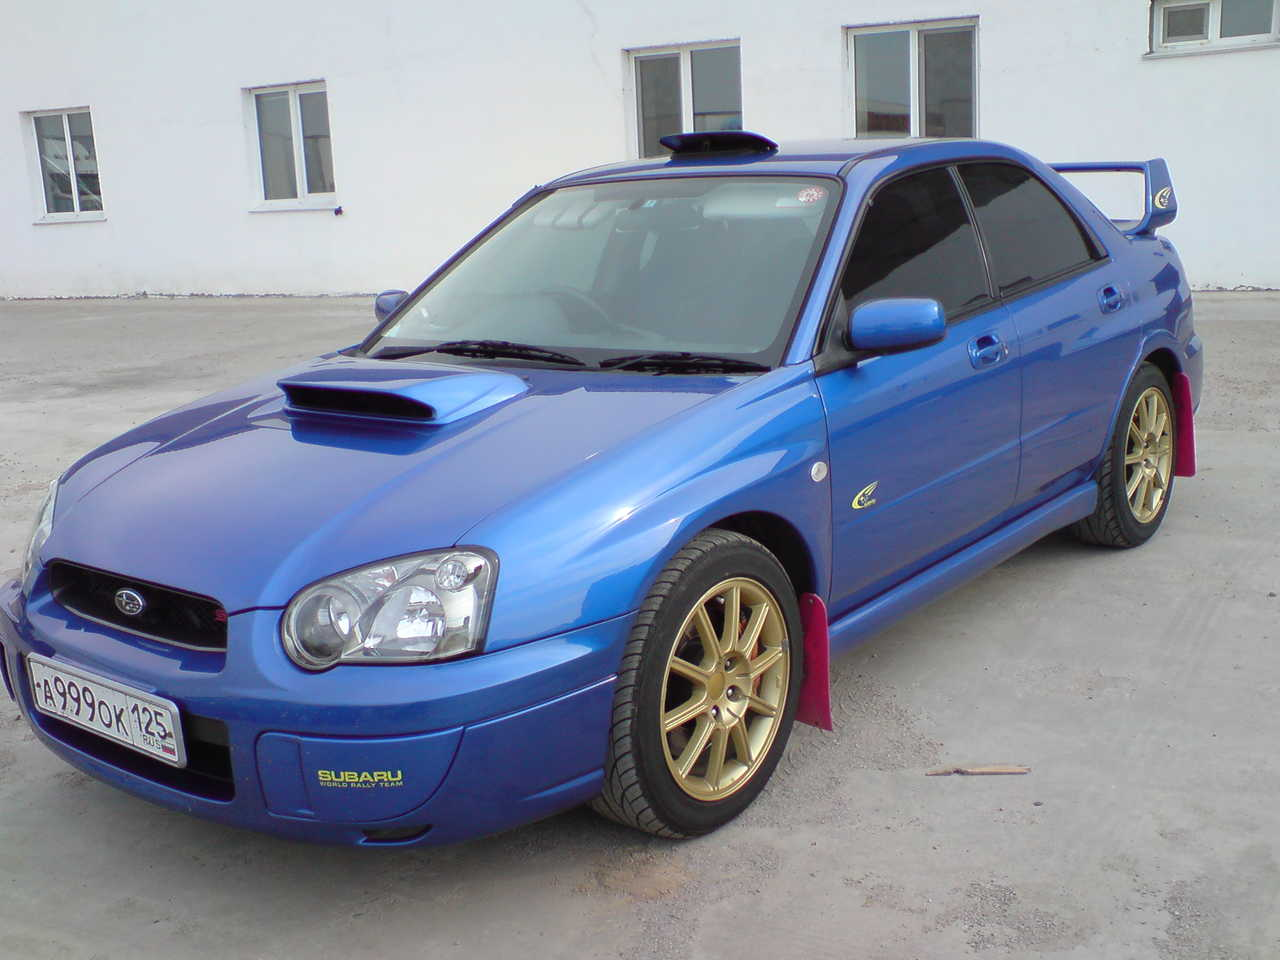 2004 Subaru Impreza WRX STi photo - 1